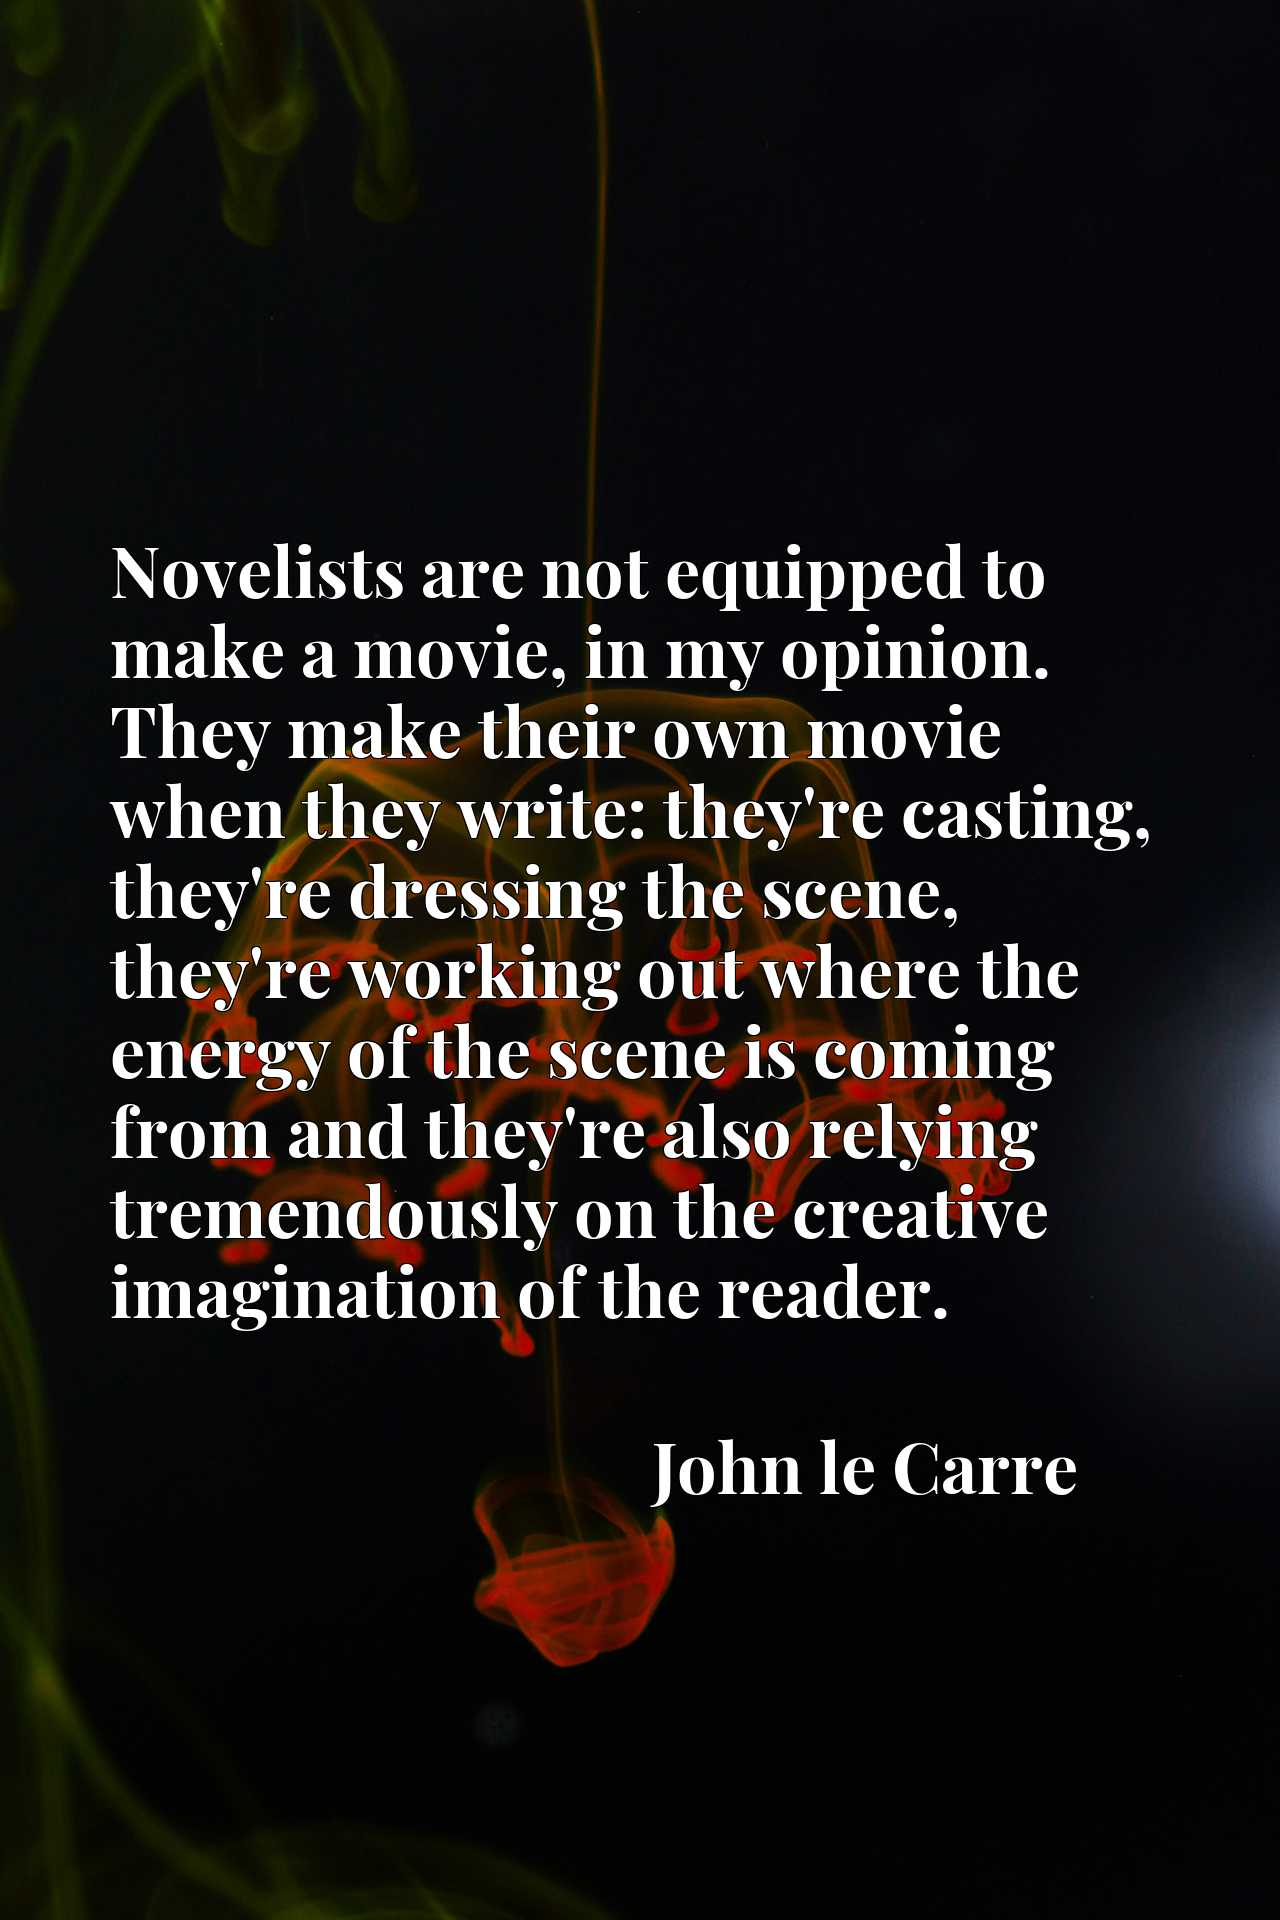 Novelists are not equipped to make a movie, in my opinion. They make their own movie when they write: they're casting, they're dressing the scene, they're working out where the energy of the scene is coming from and they're also relying tremendously on the creative imagination of the reader.